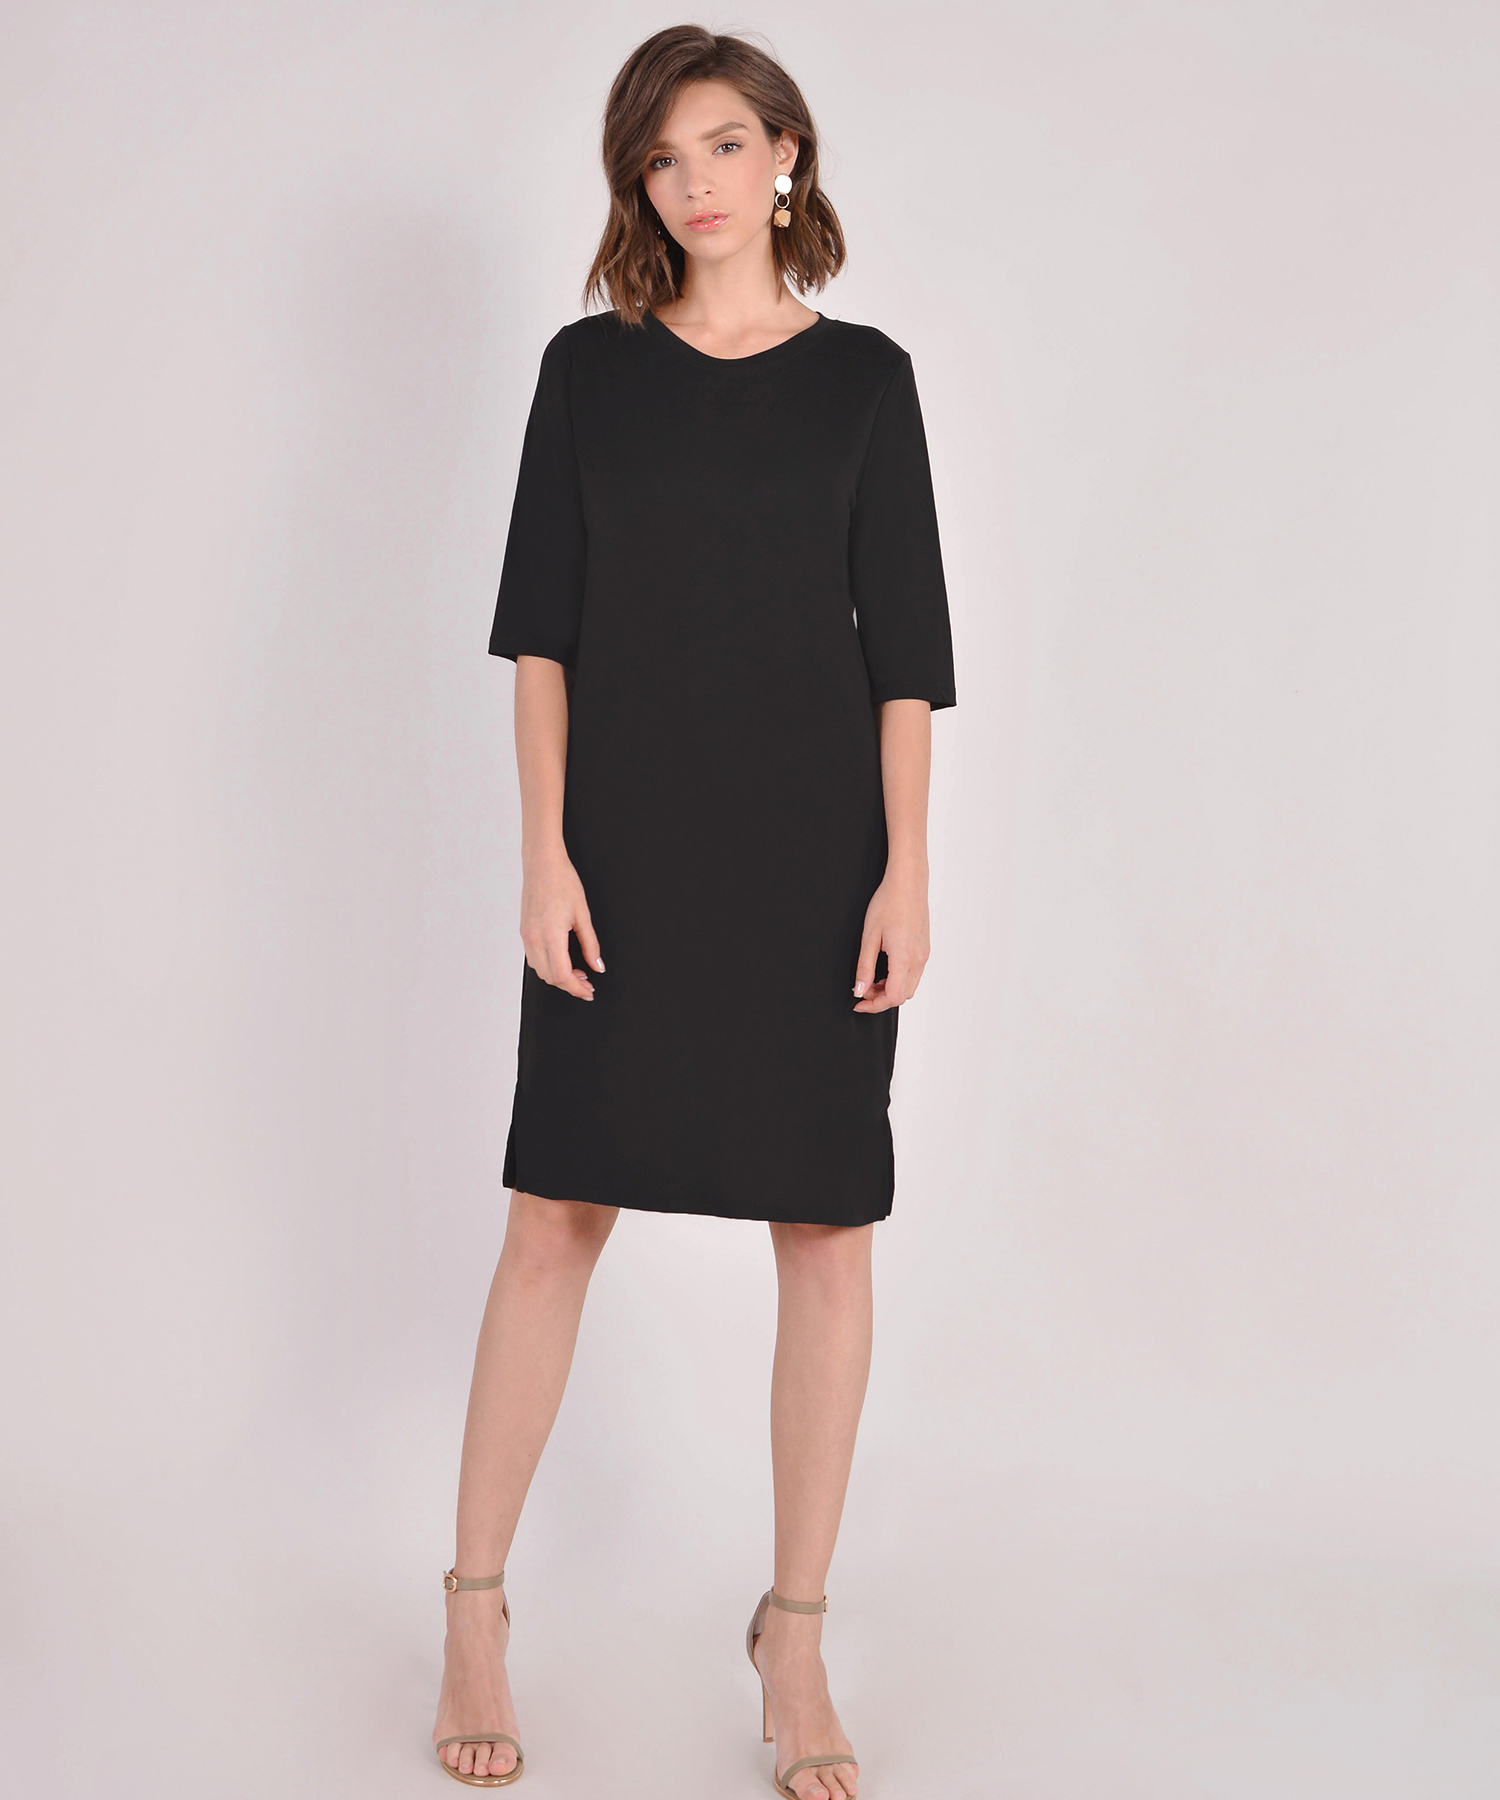 92280fd8bb21 Riley Oversized T-Shirt Dress - Black